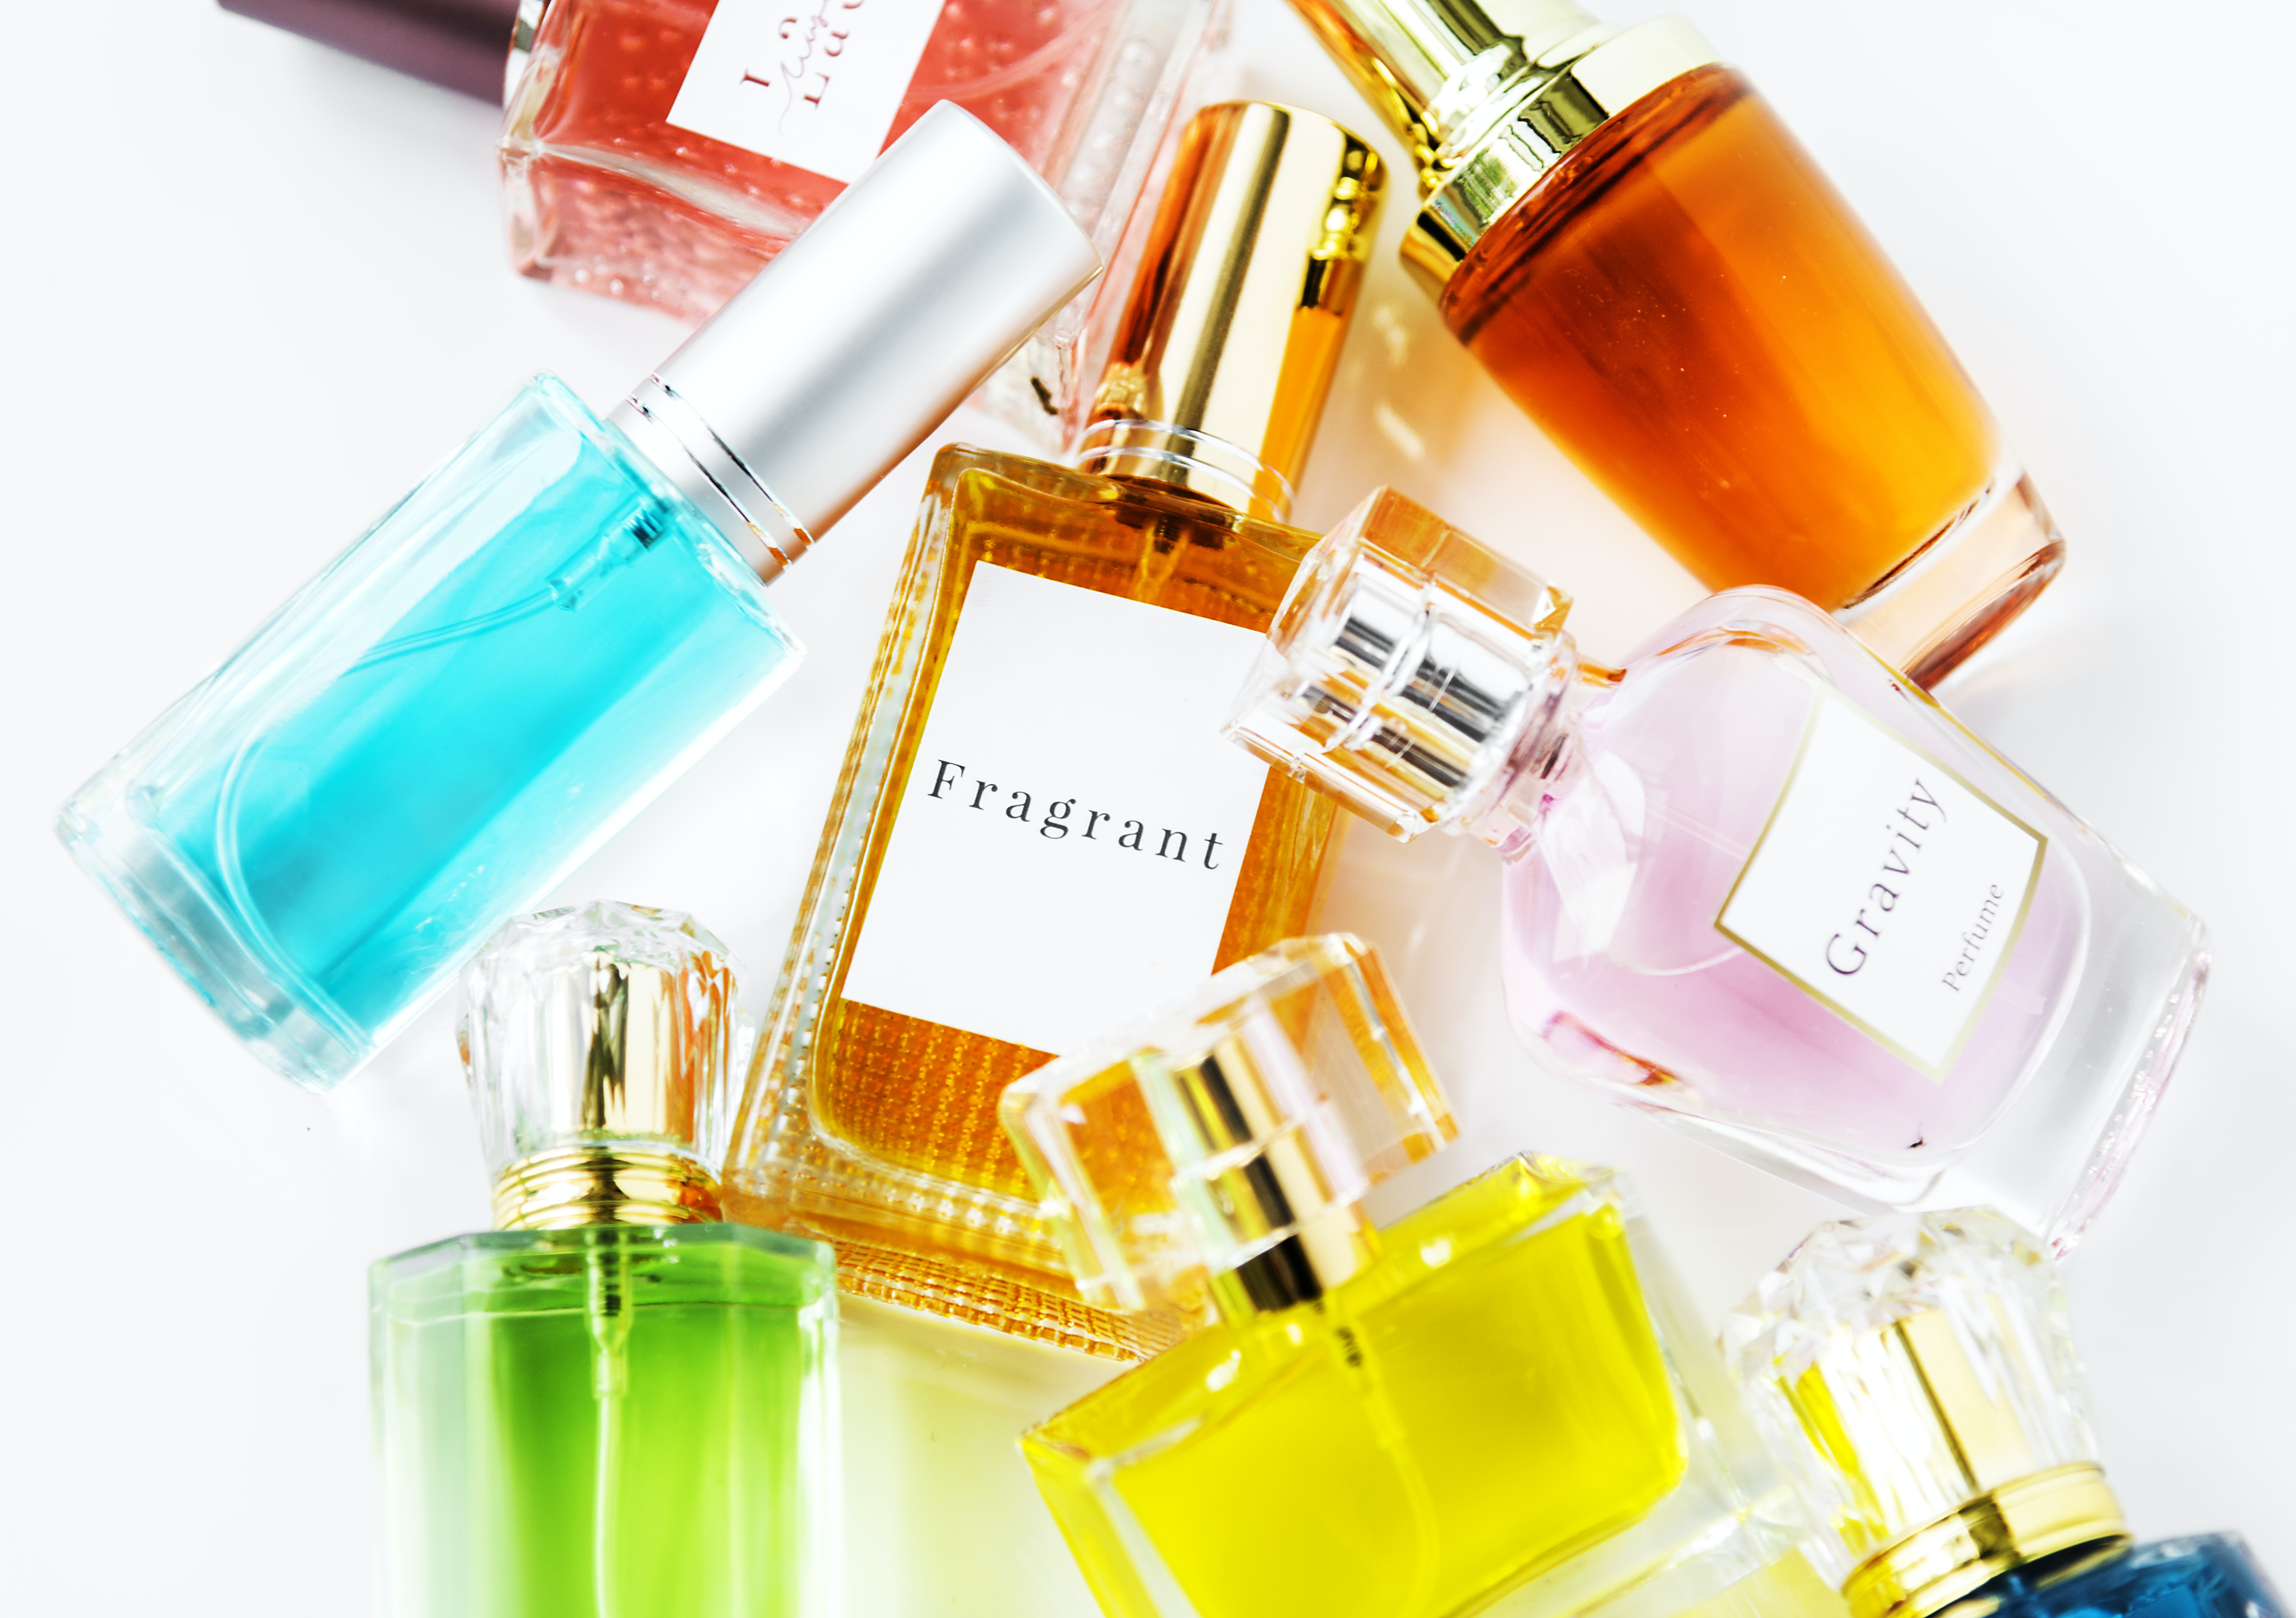 flat-lay photography of fragrance bottles